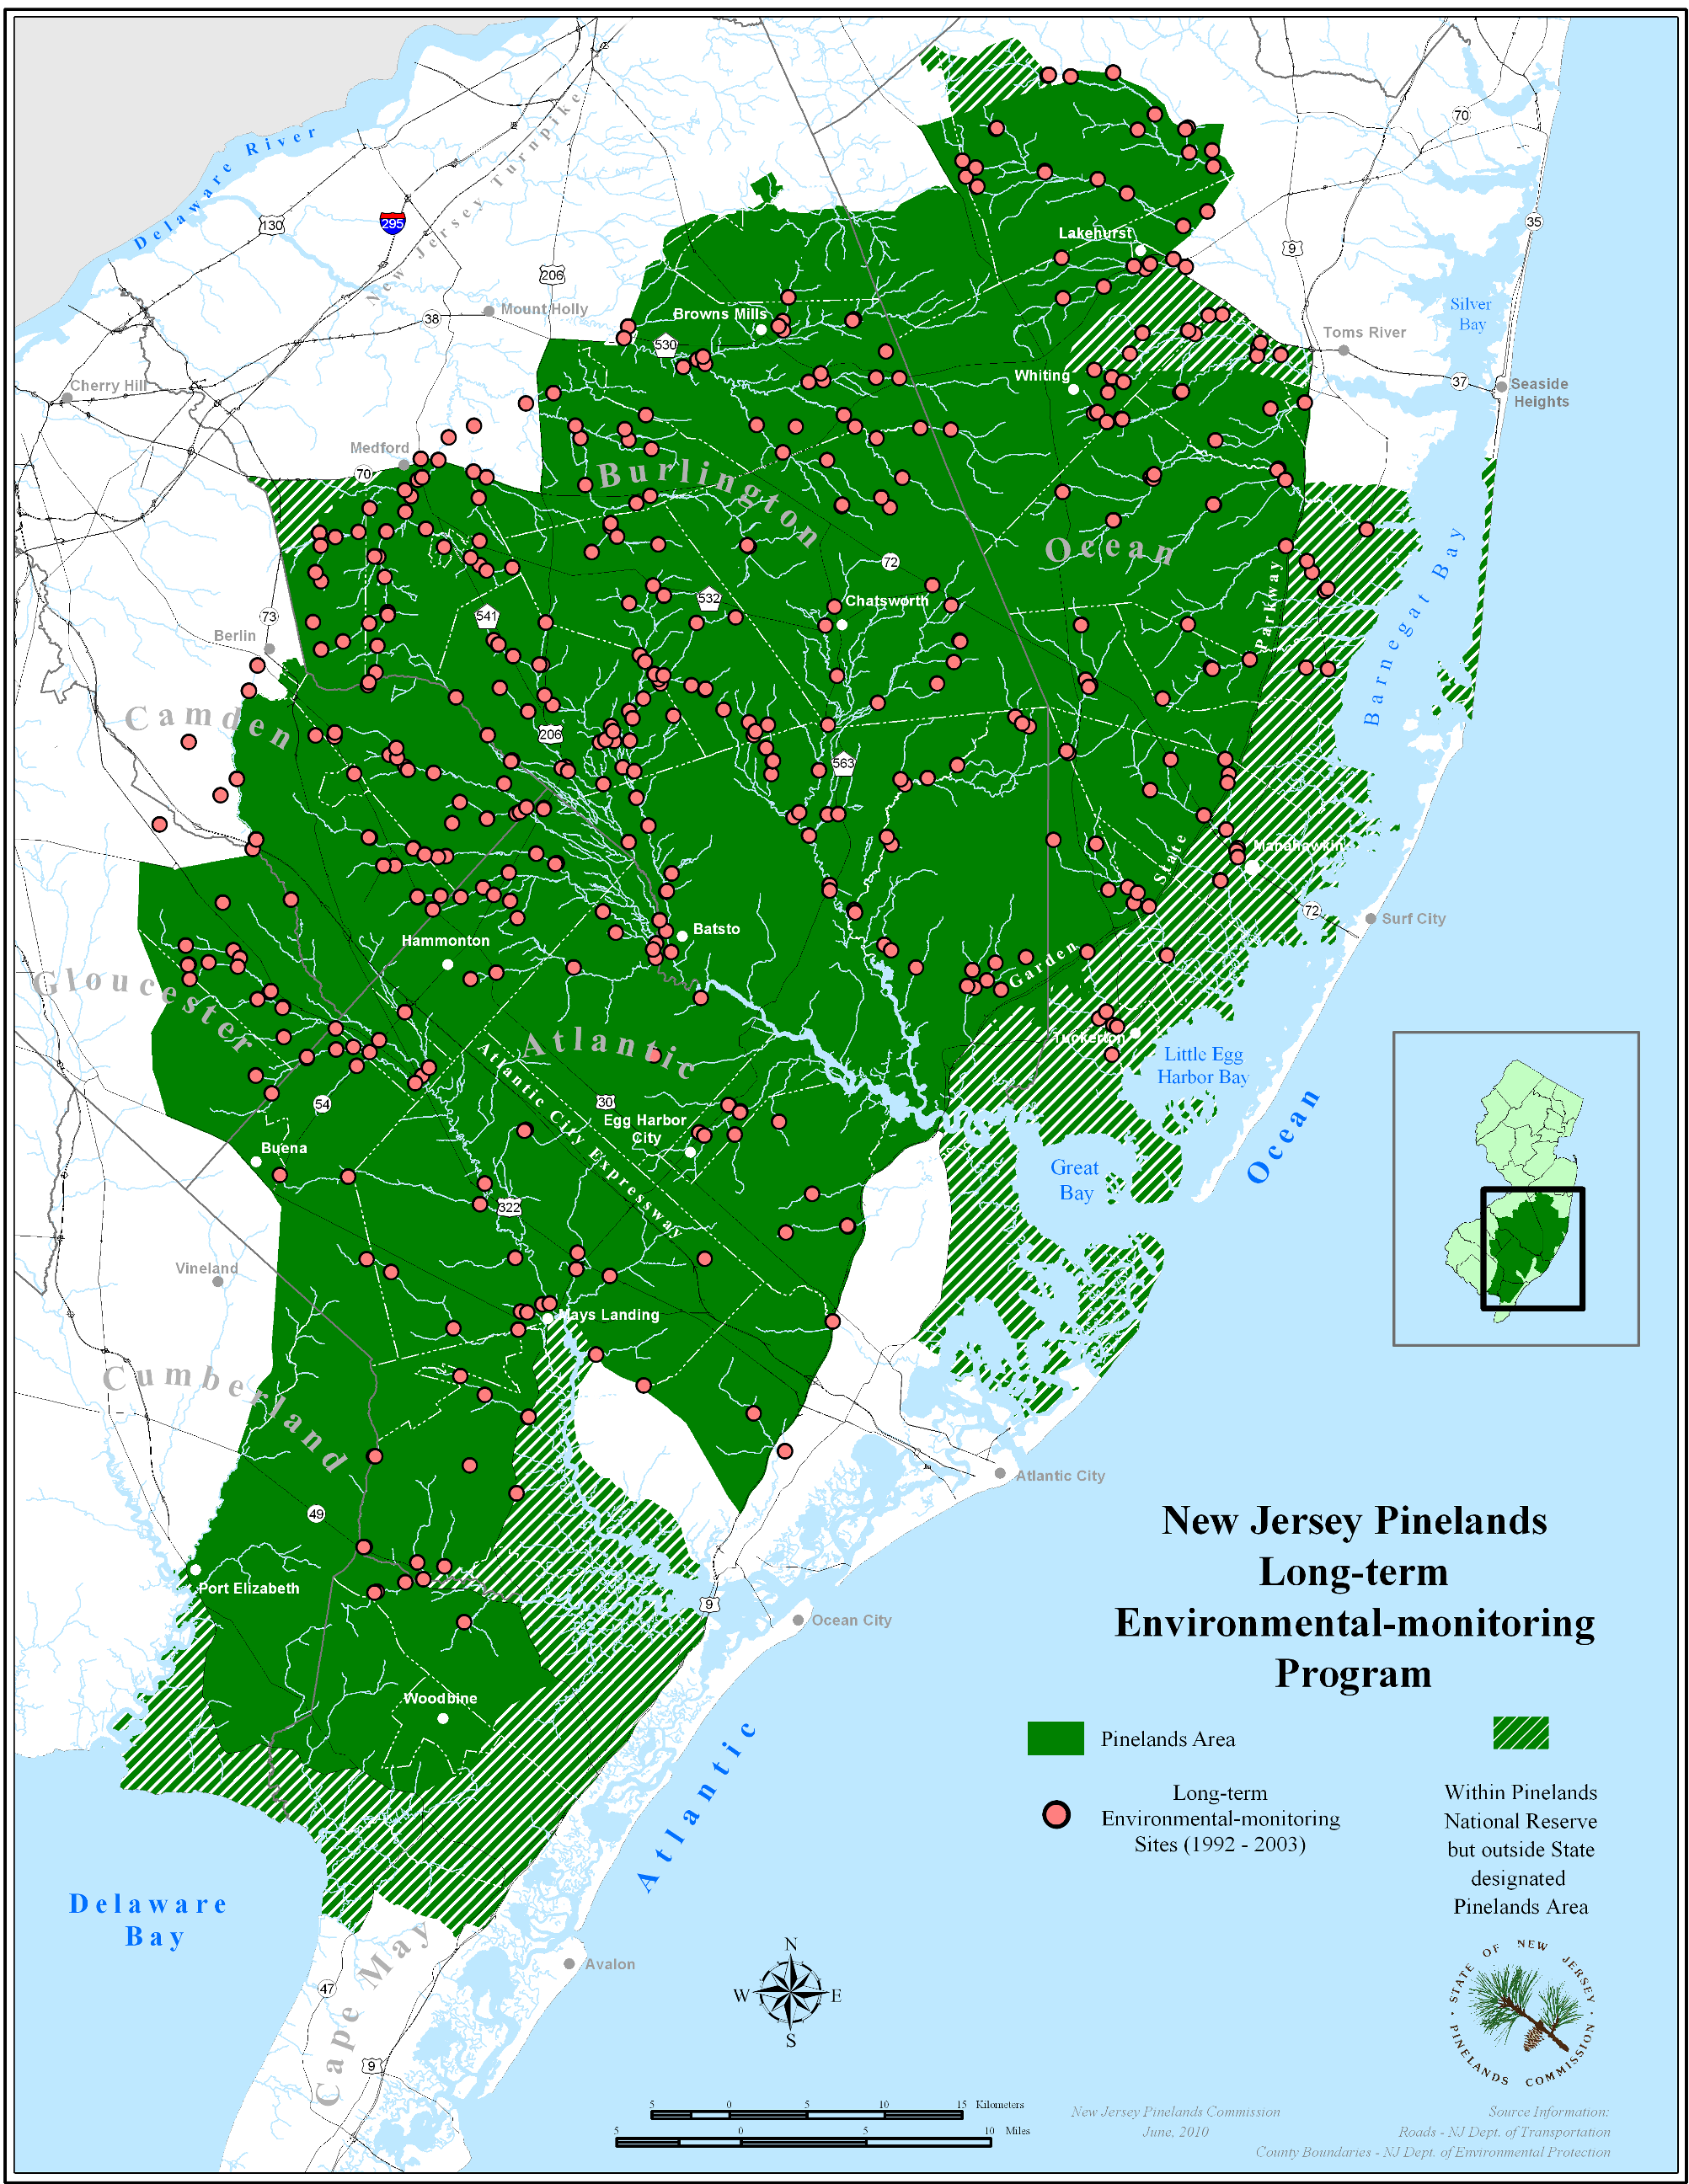 New Jersey Pinelands Commission | Environmental Monitoring